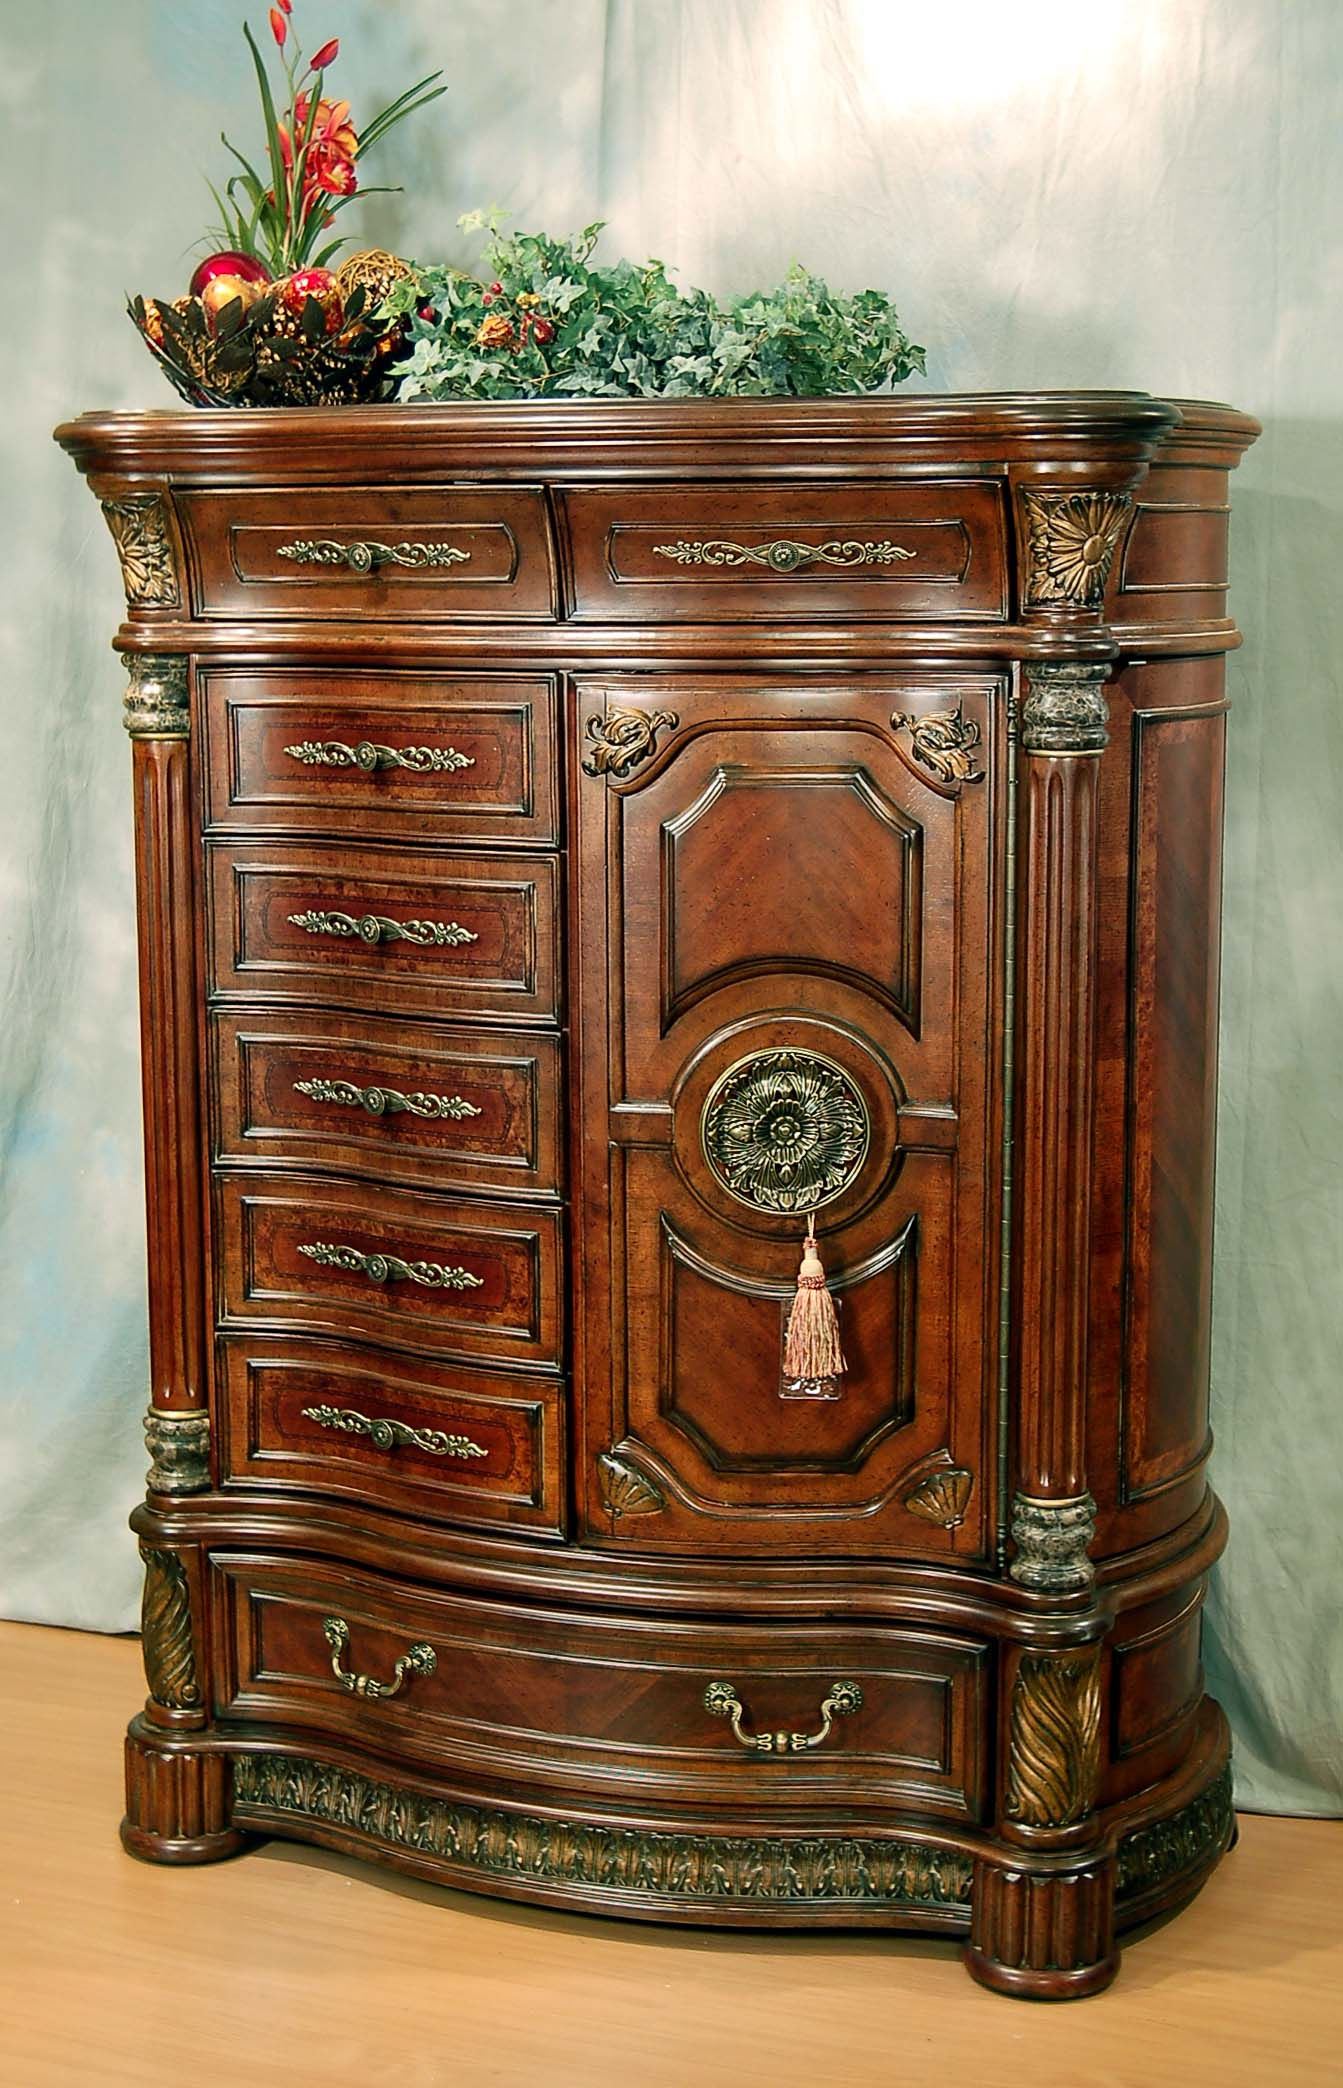 World Bedroom Furniture: Classic Romantic Old World Spanish Chestnut Bedroom Set